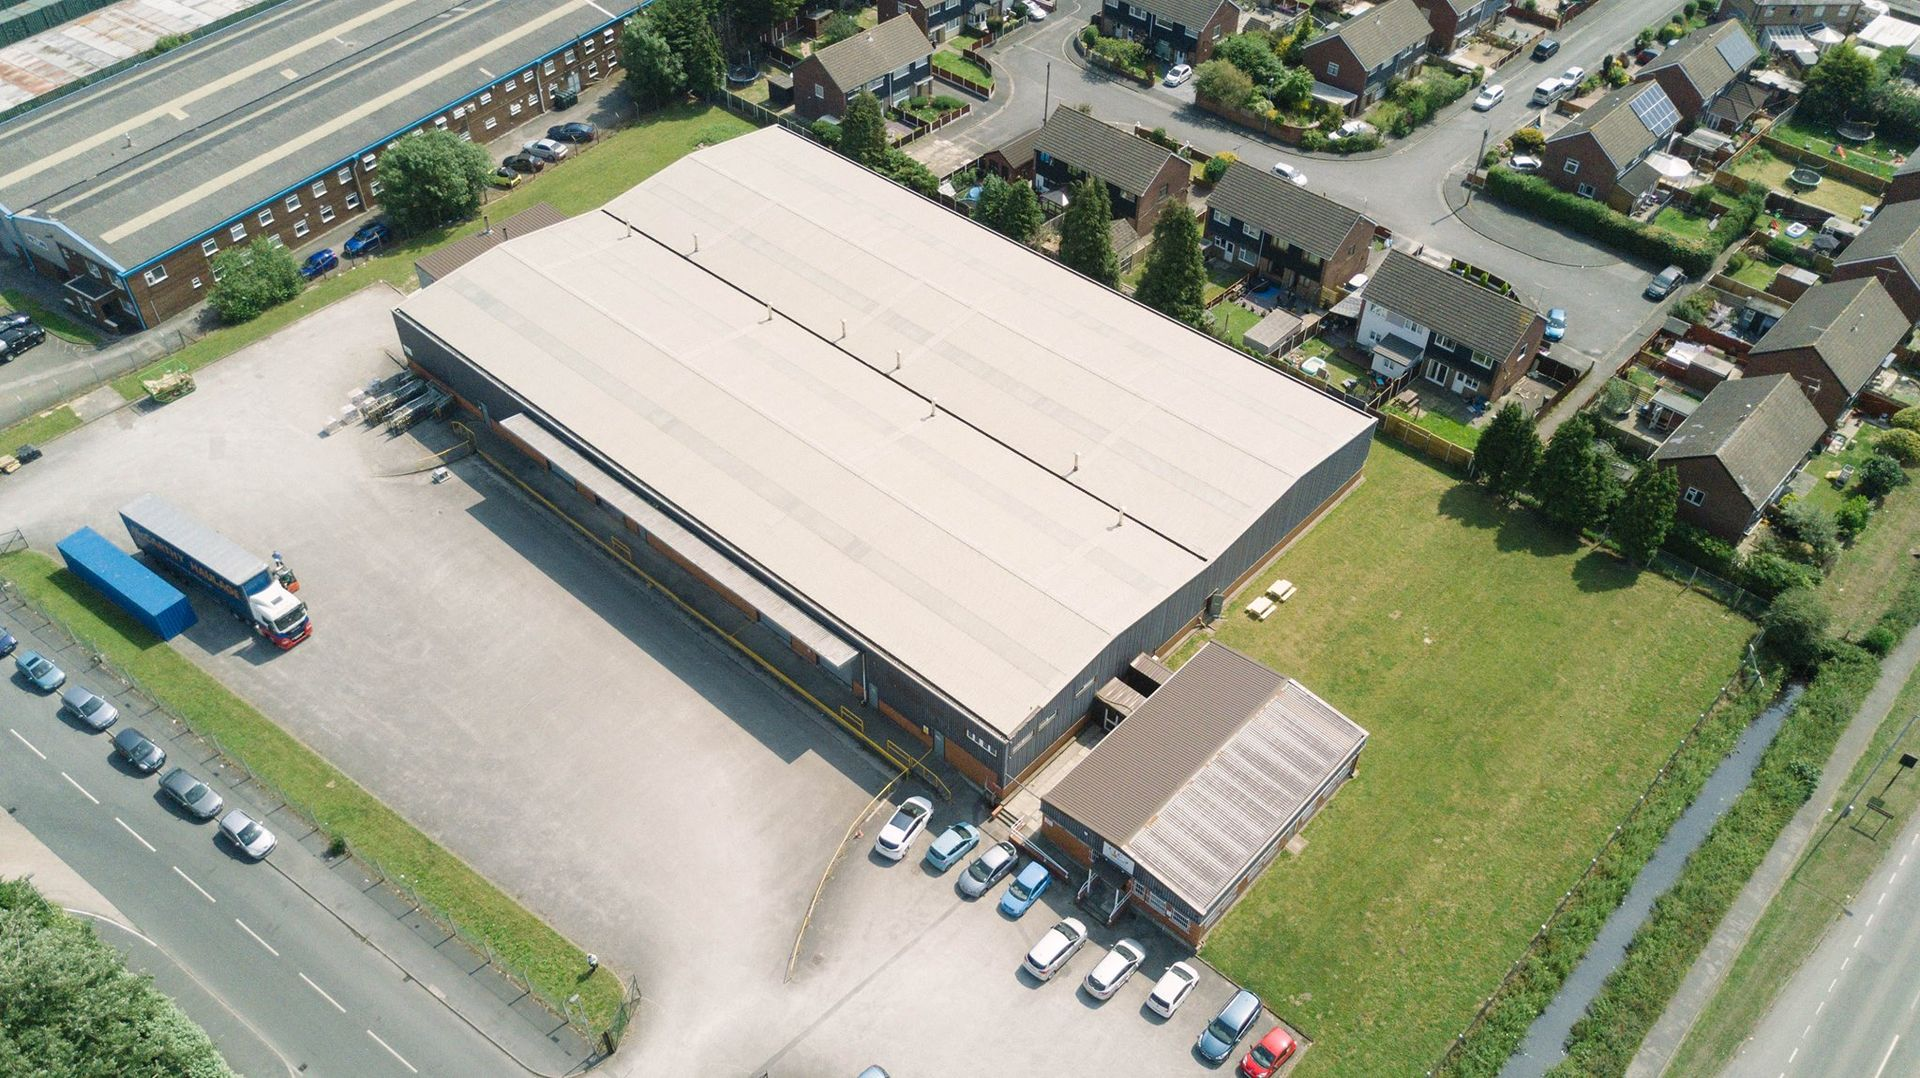 Aerial view of the KCLCT Warehouse